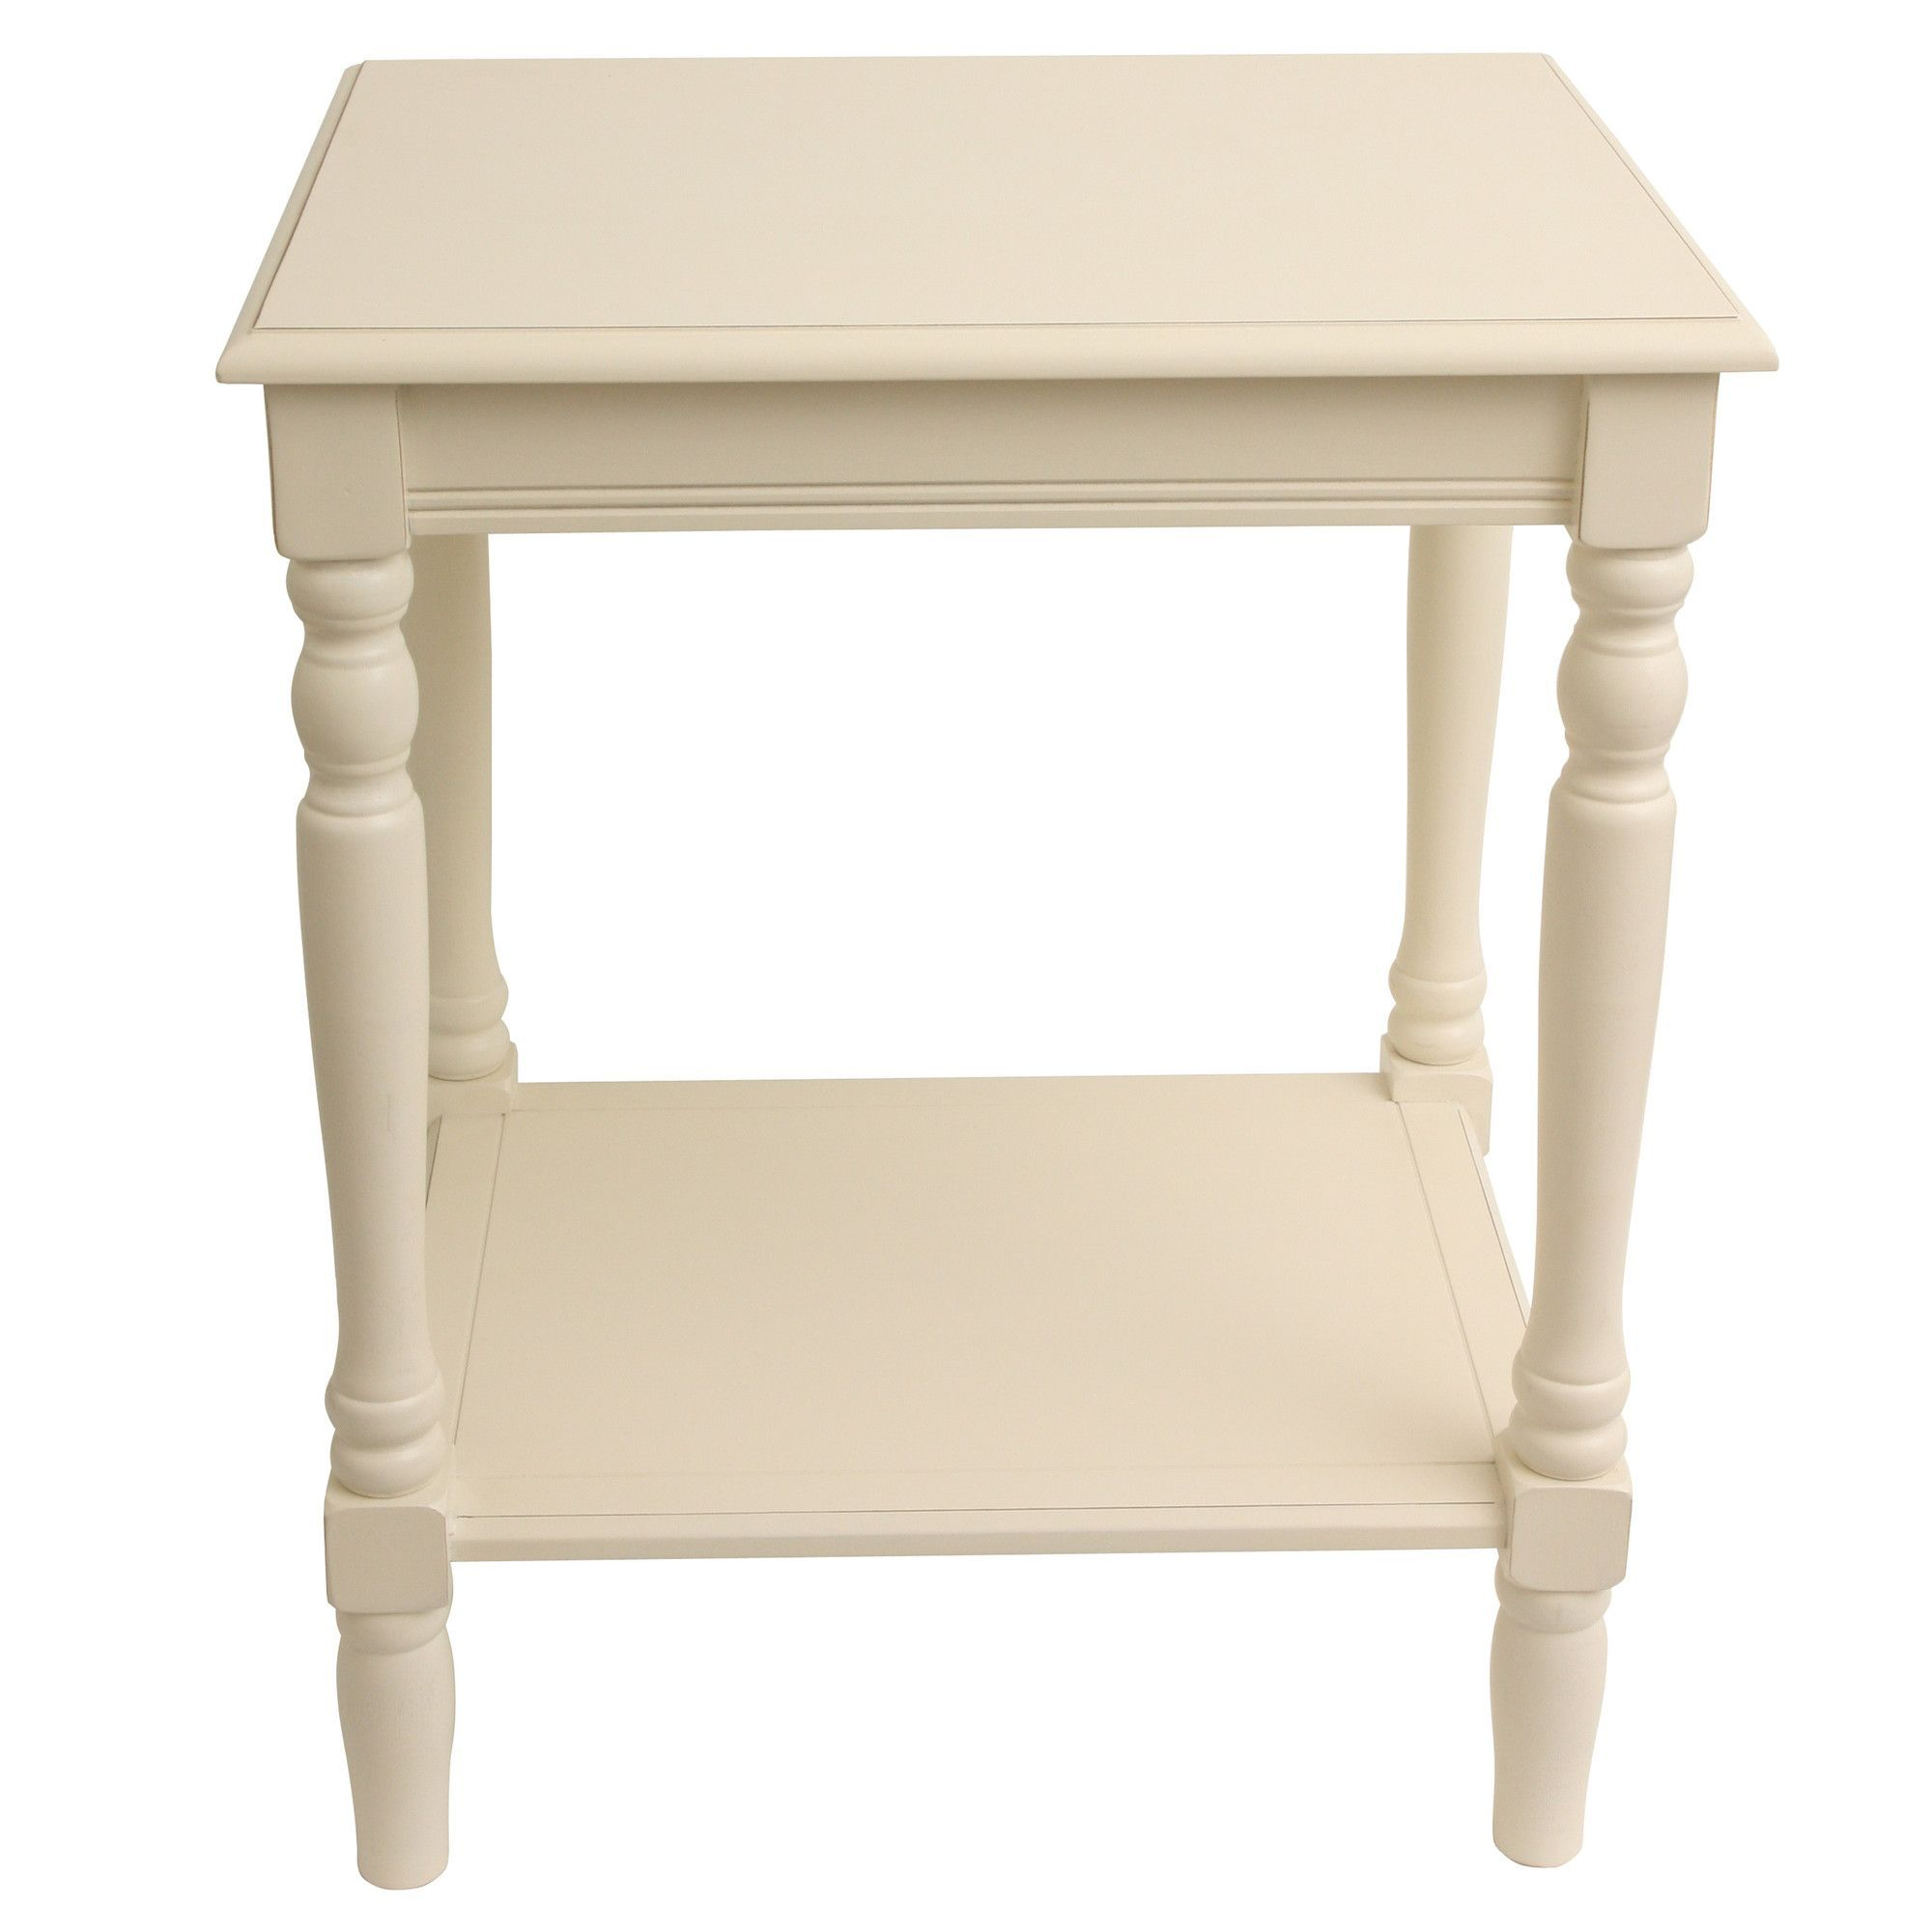 Vallee End Table White End Tables End Tables Sofa End Tables